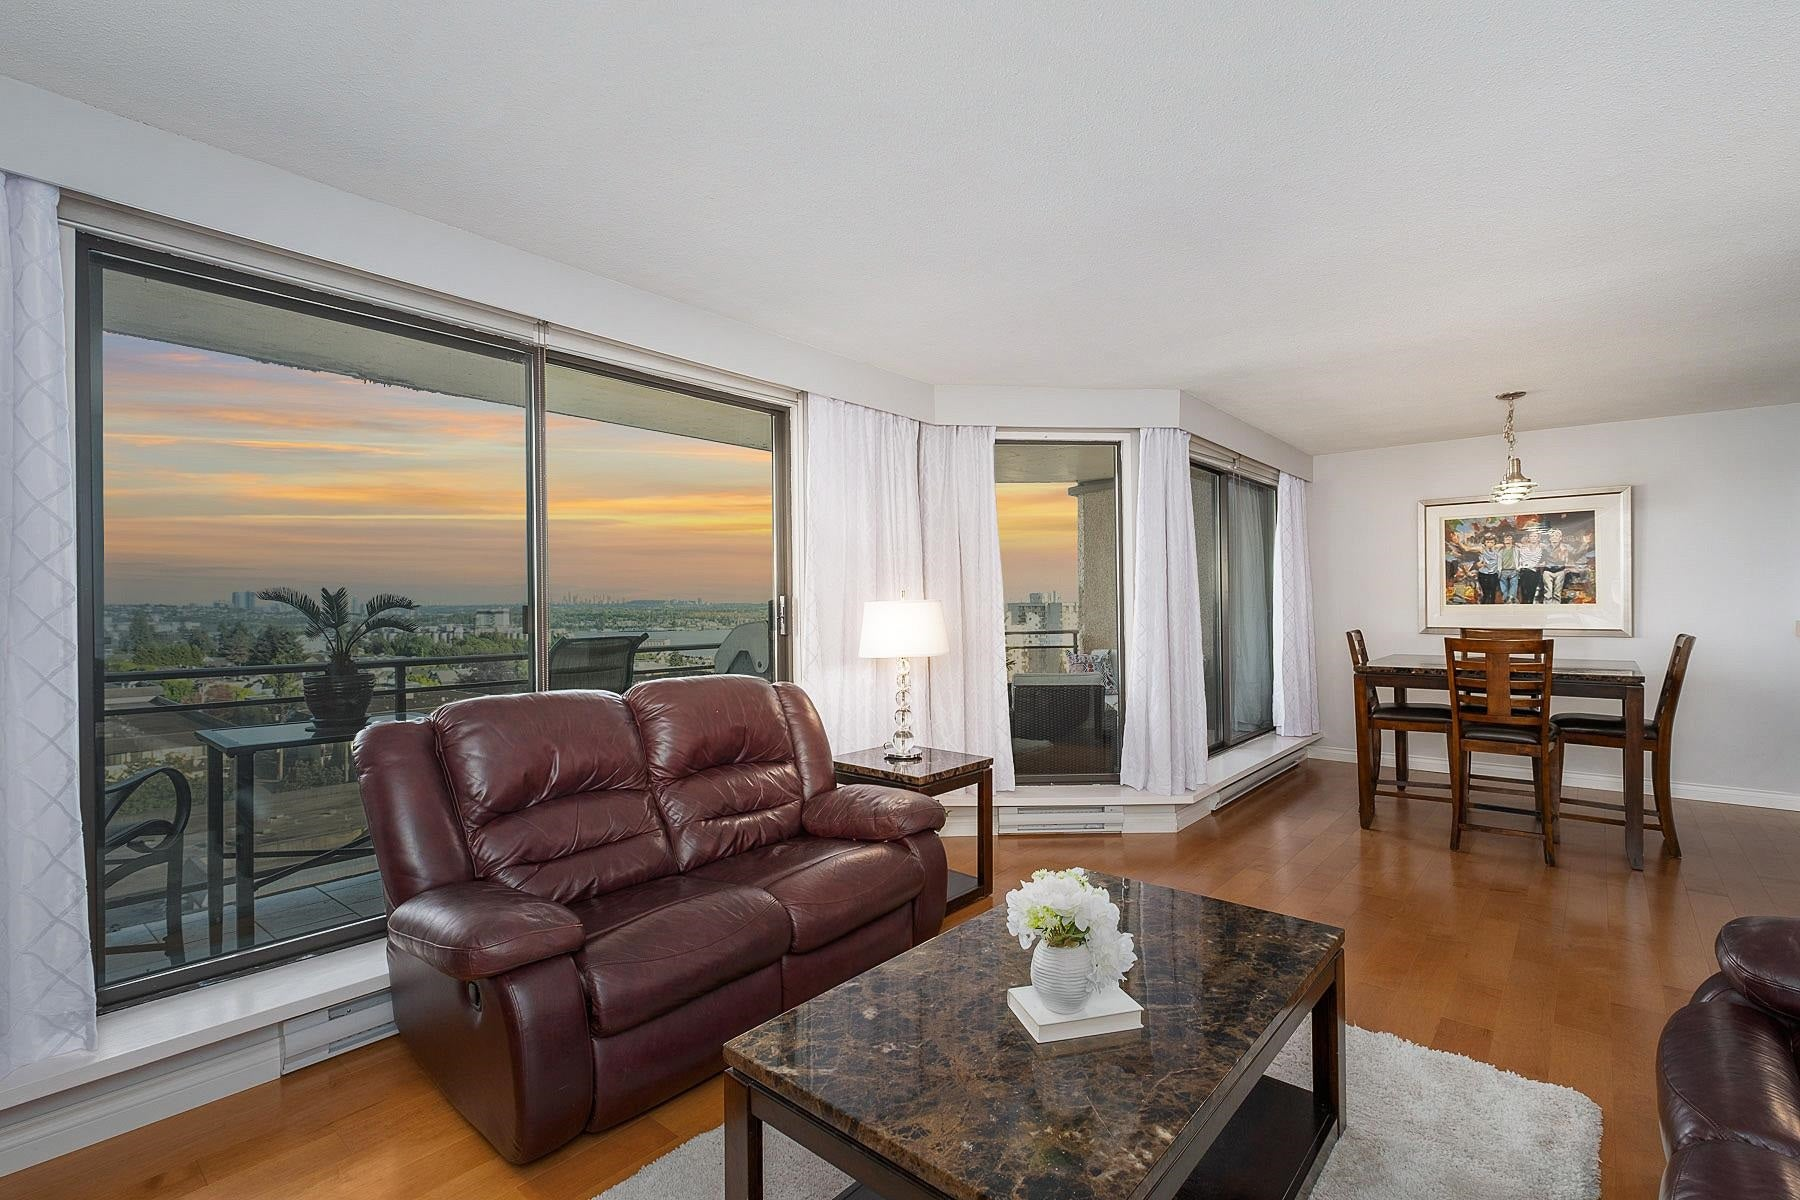 1001 444 LONSDALE AVENUE - Lower Lonsdale Apartment/Condo for sale, 2 Bedrooms (R2627630) - #1